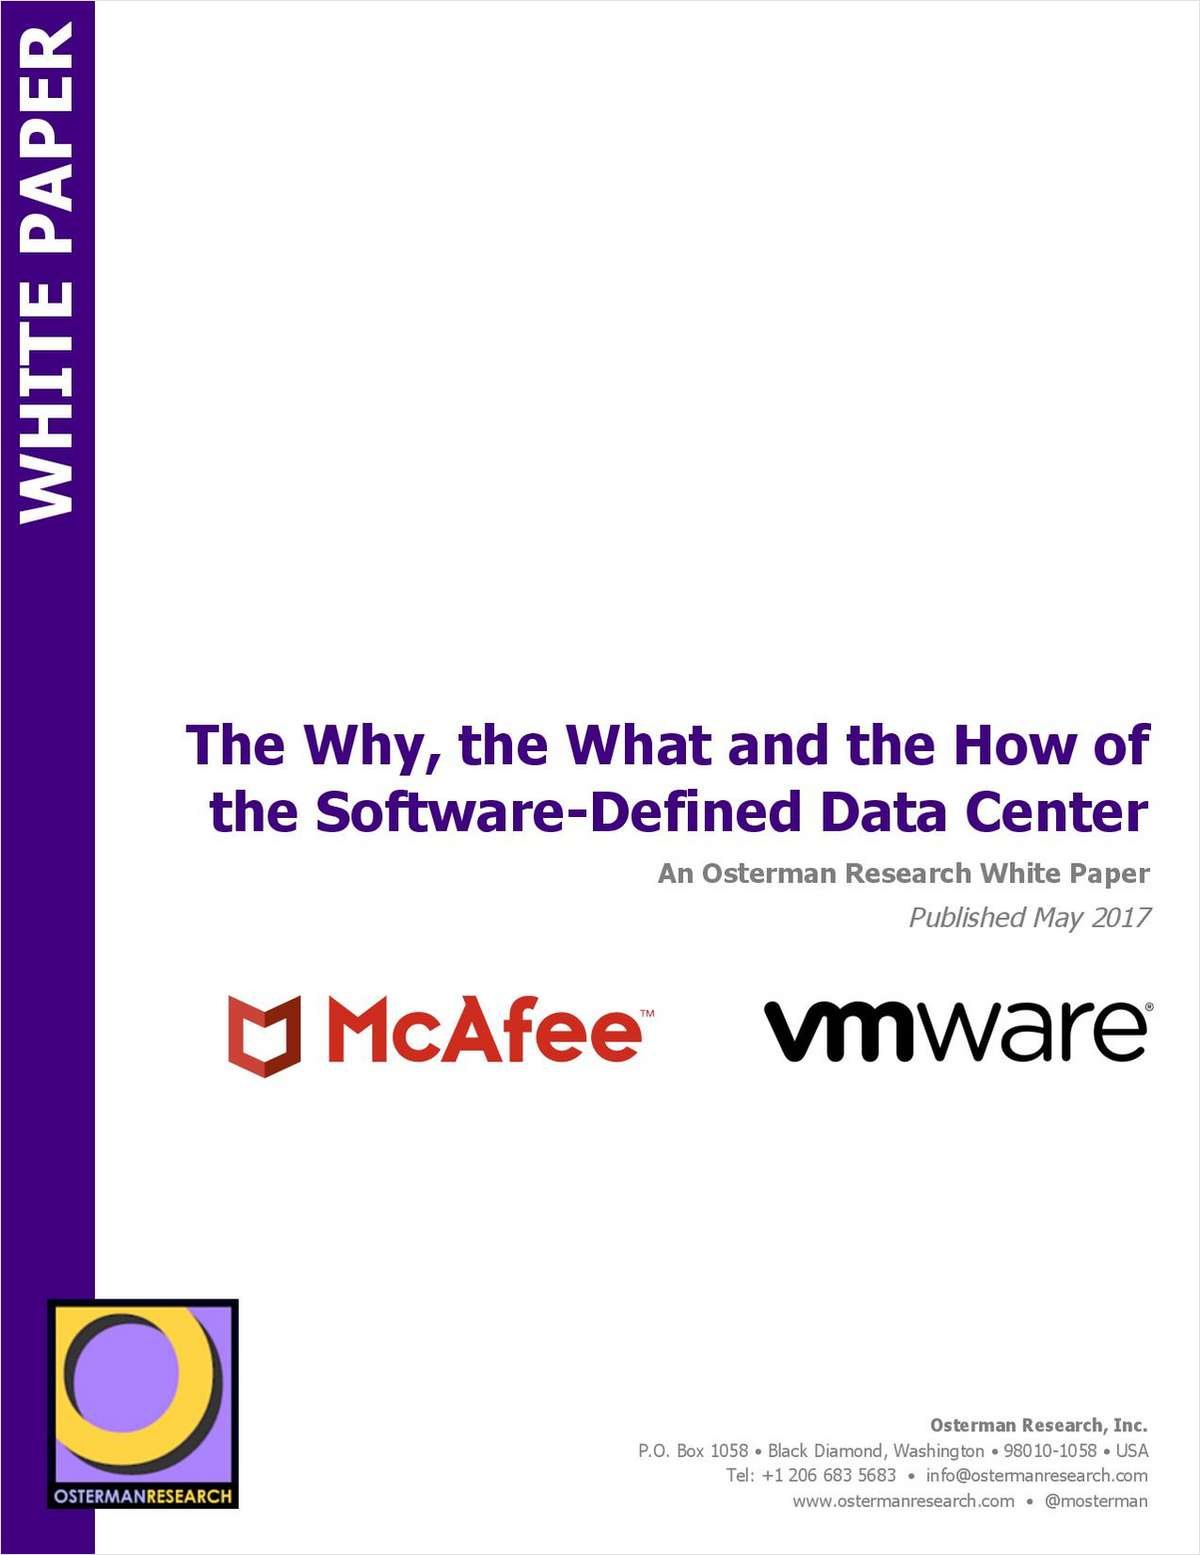 The Why, the What and the How of the Software-Defined Data Center: An Osterman Research White Paper